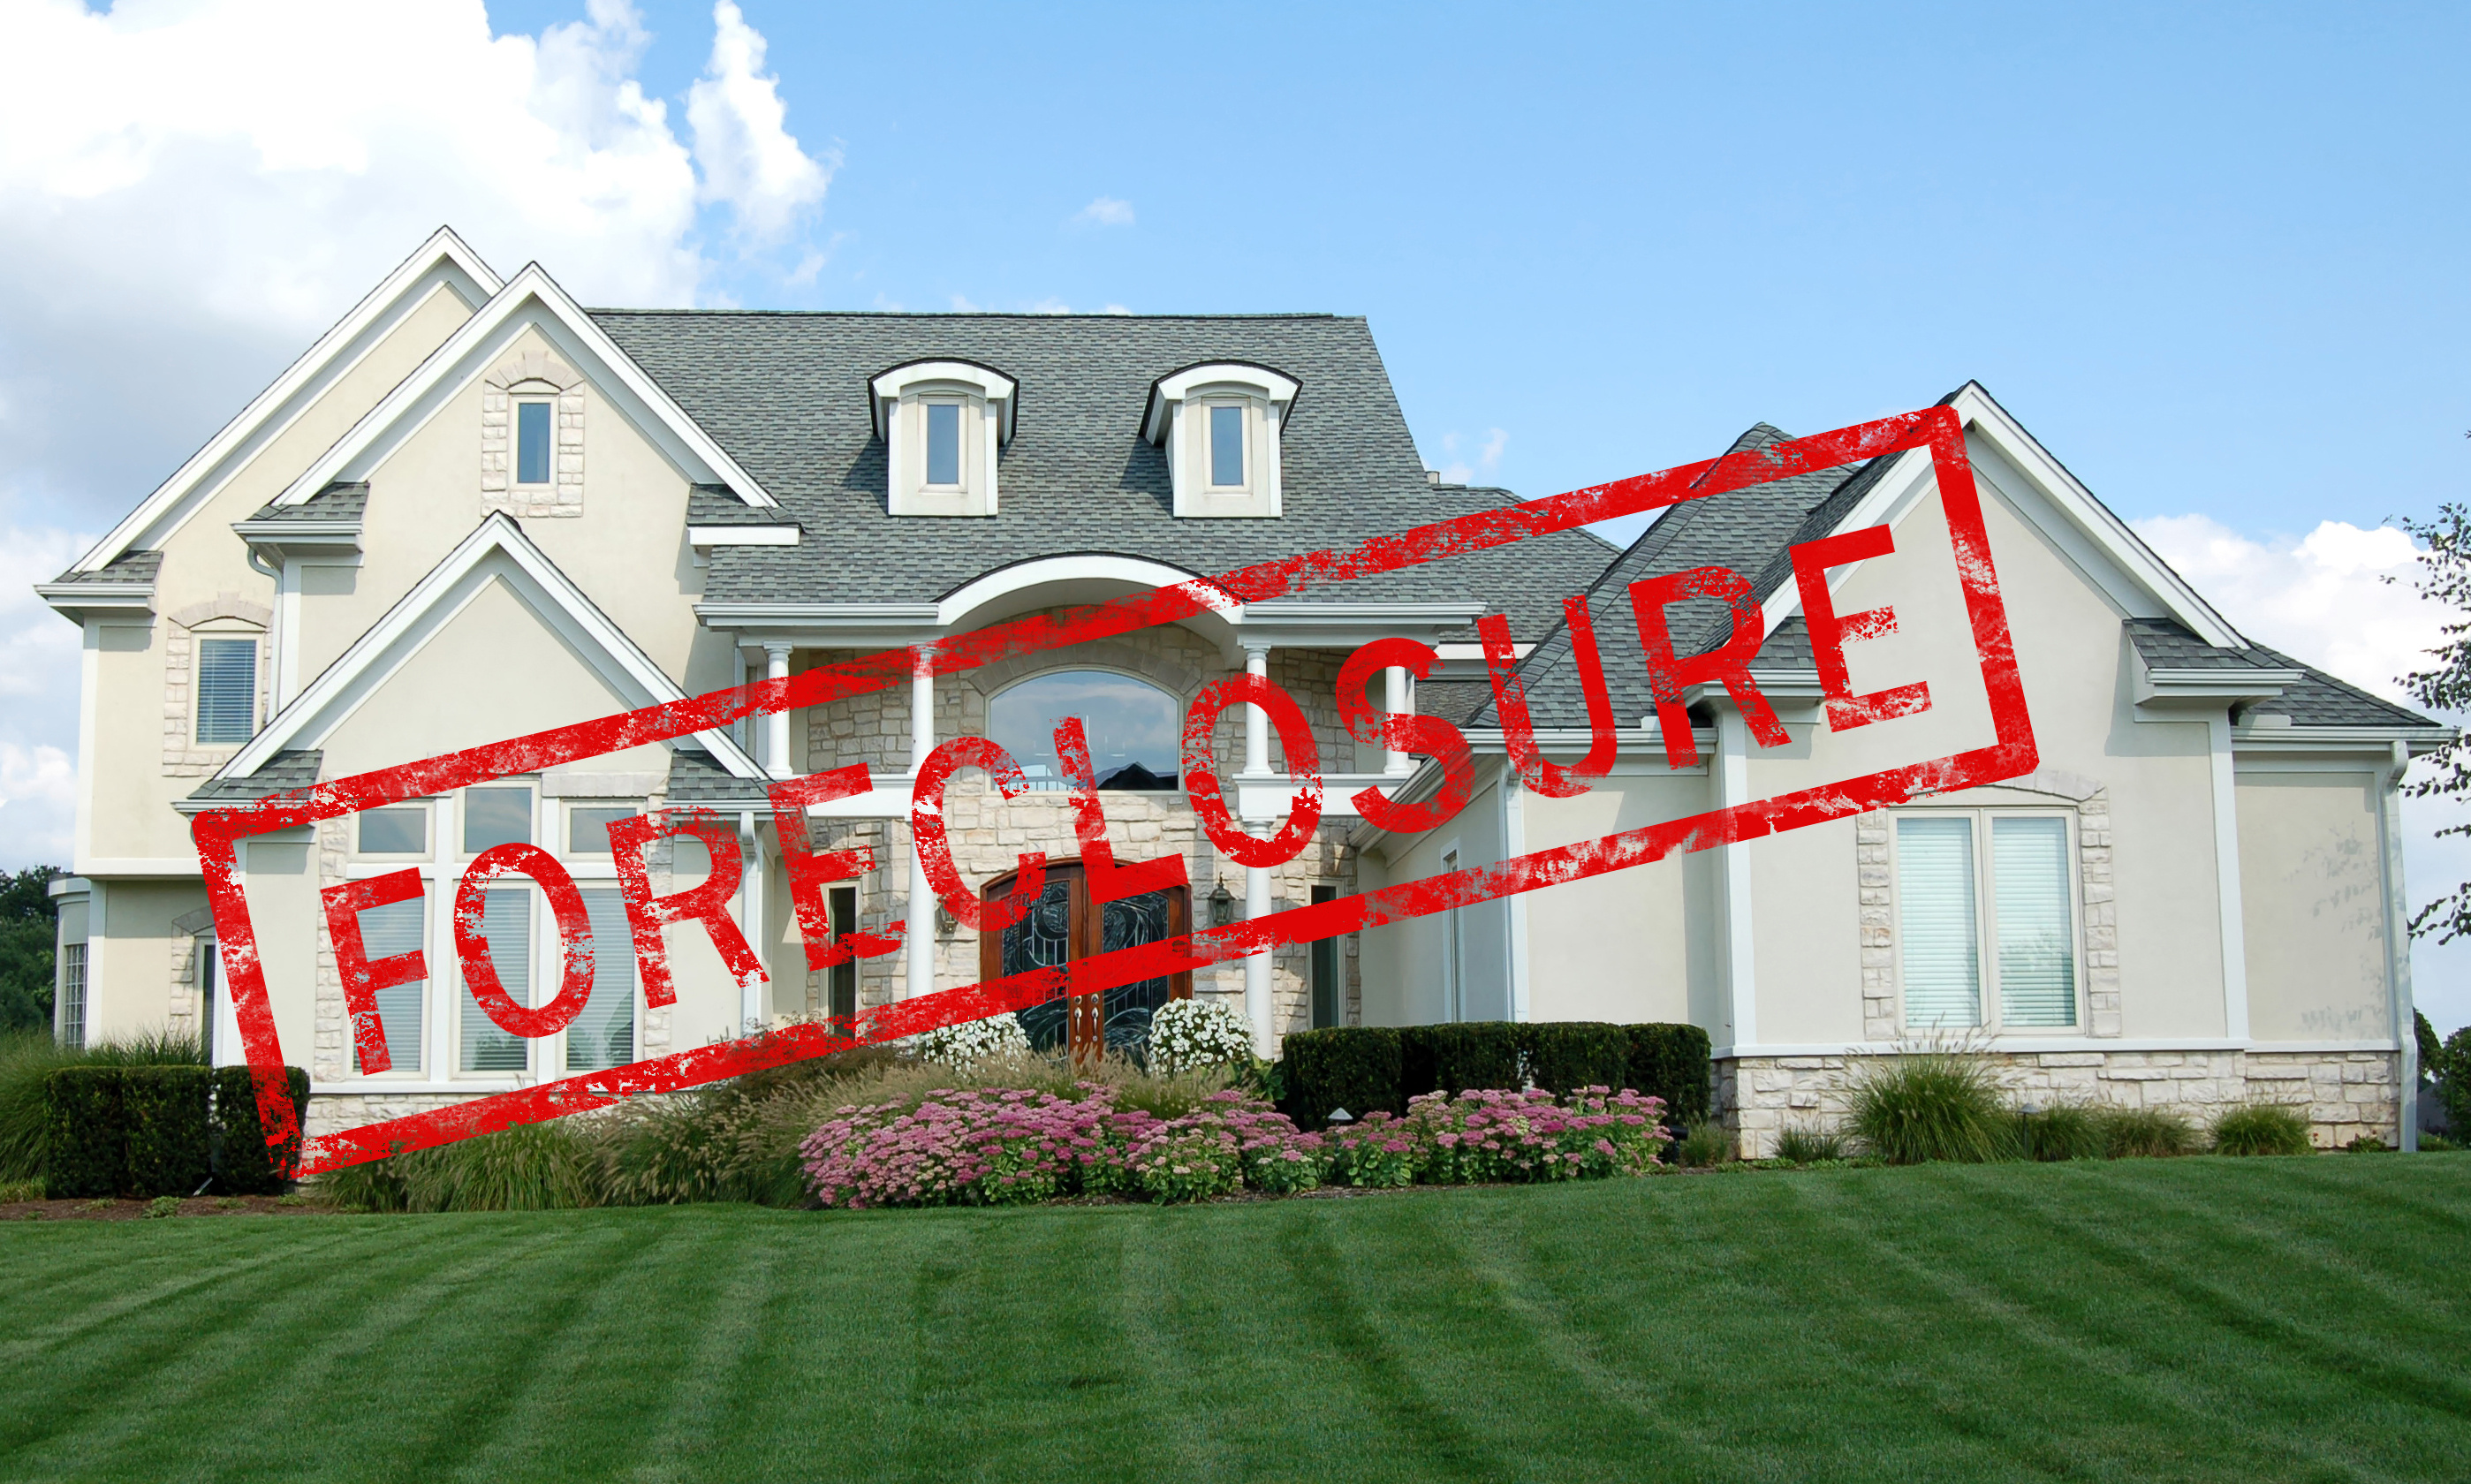 Call JWD APPRAISAL SERVICE, LLC. when you need appraisals on Monmouth foreclosures